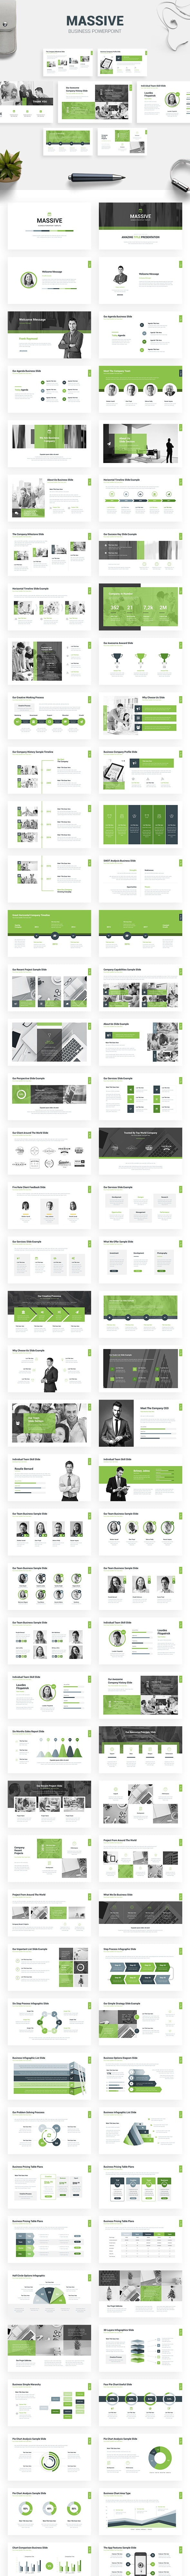 Massive - Business Presentation Template - Business PowerPoint Templates